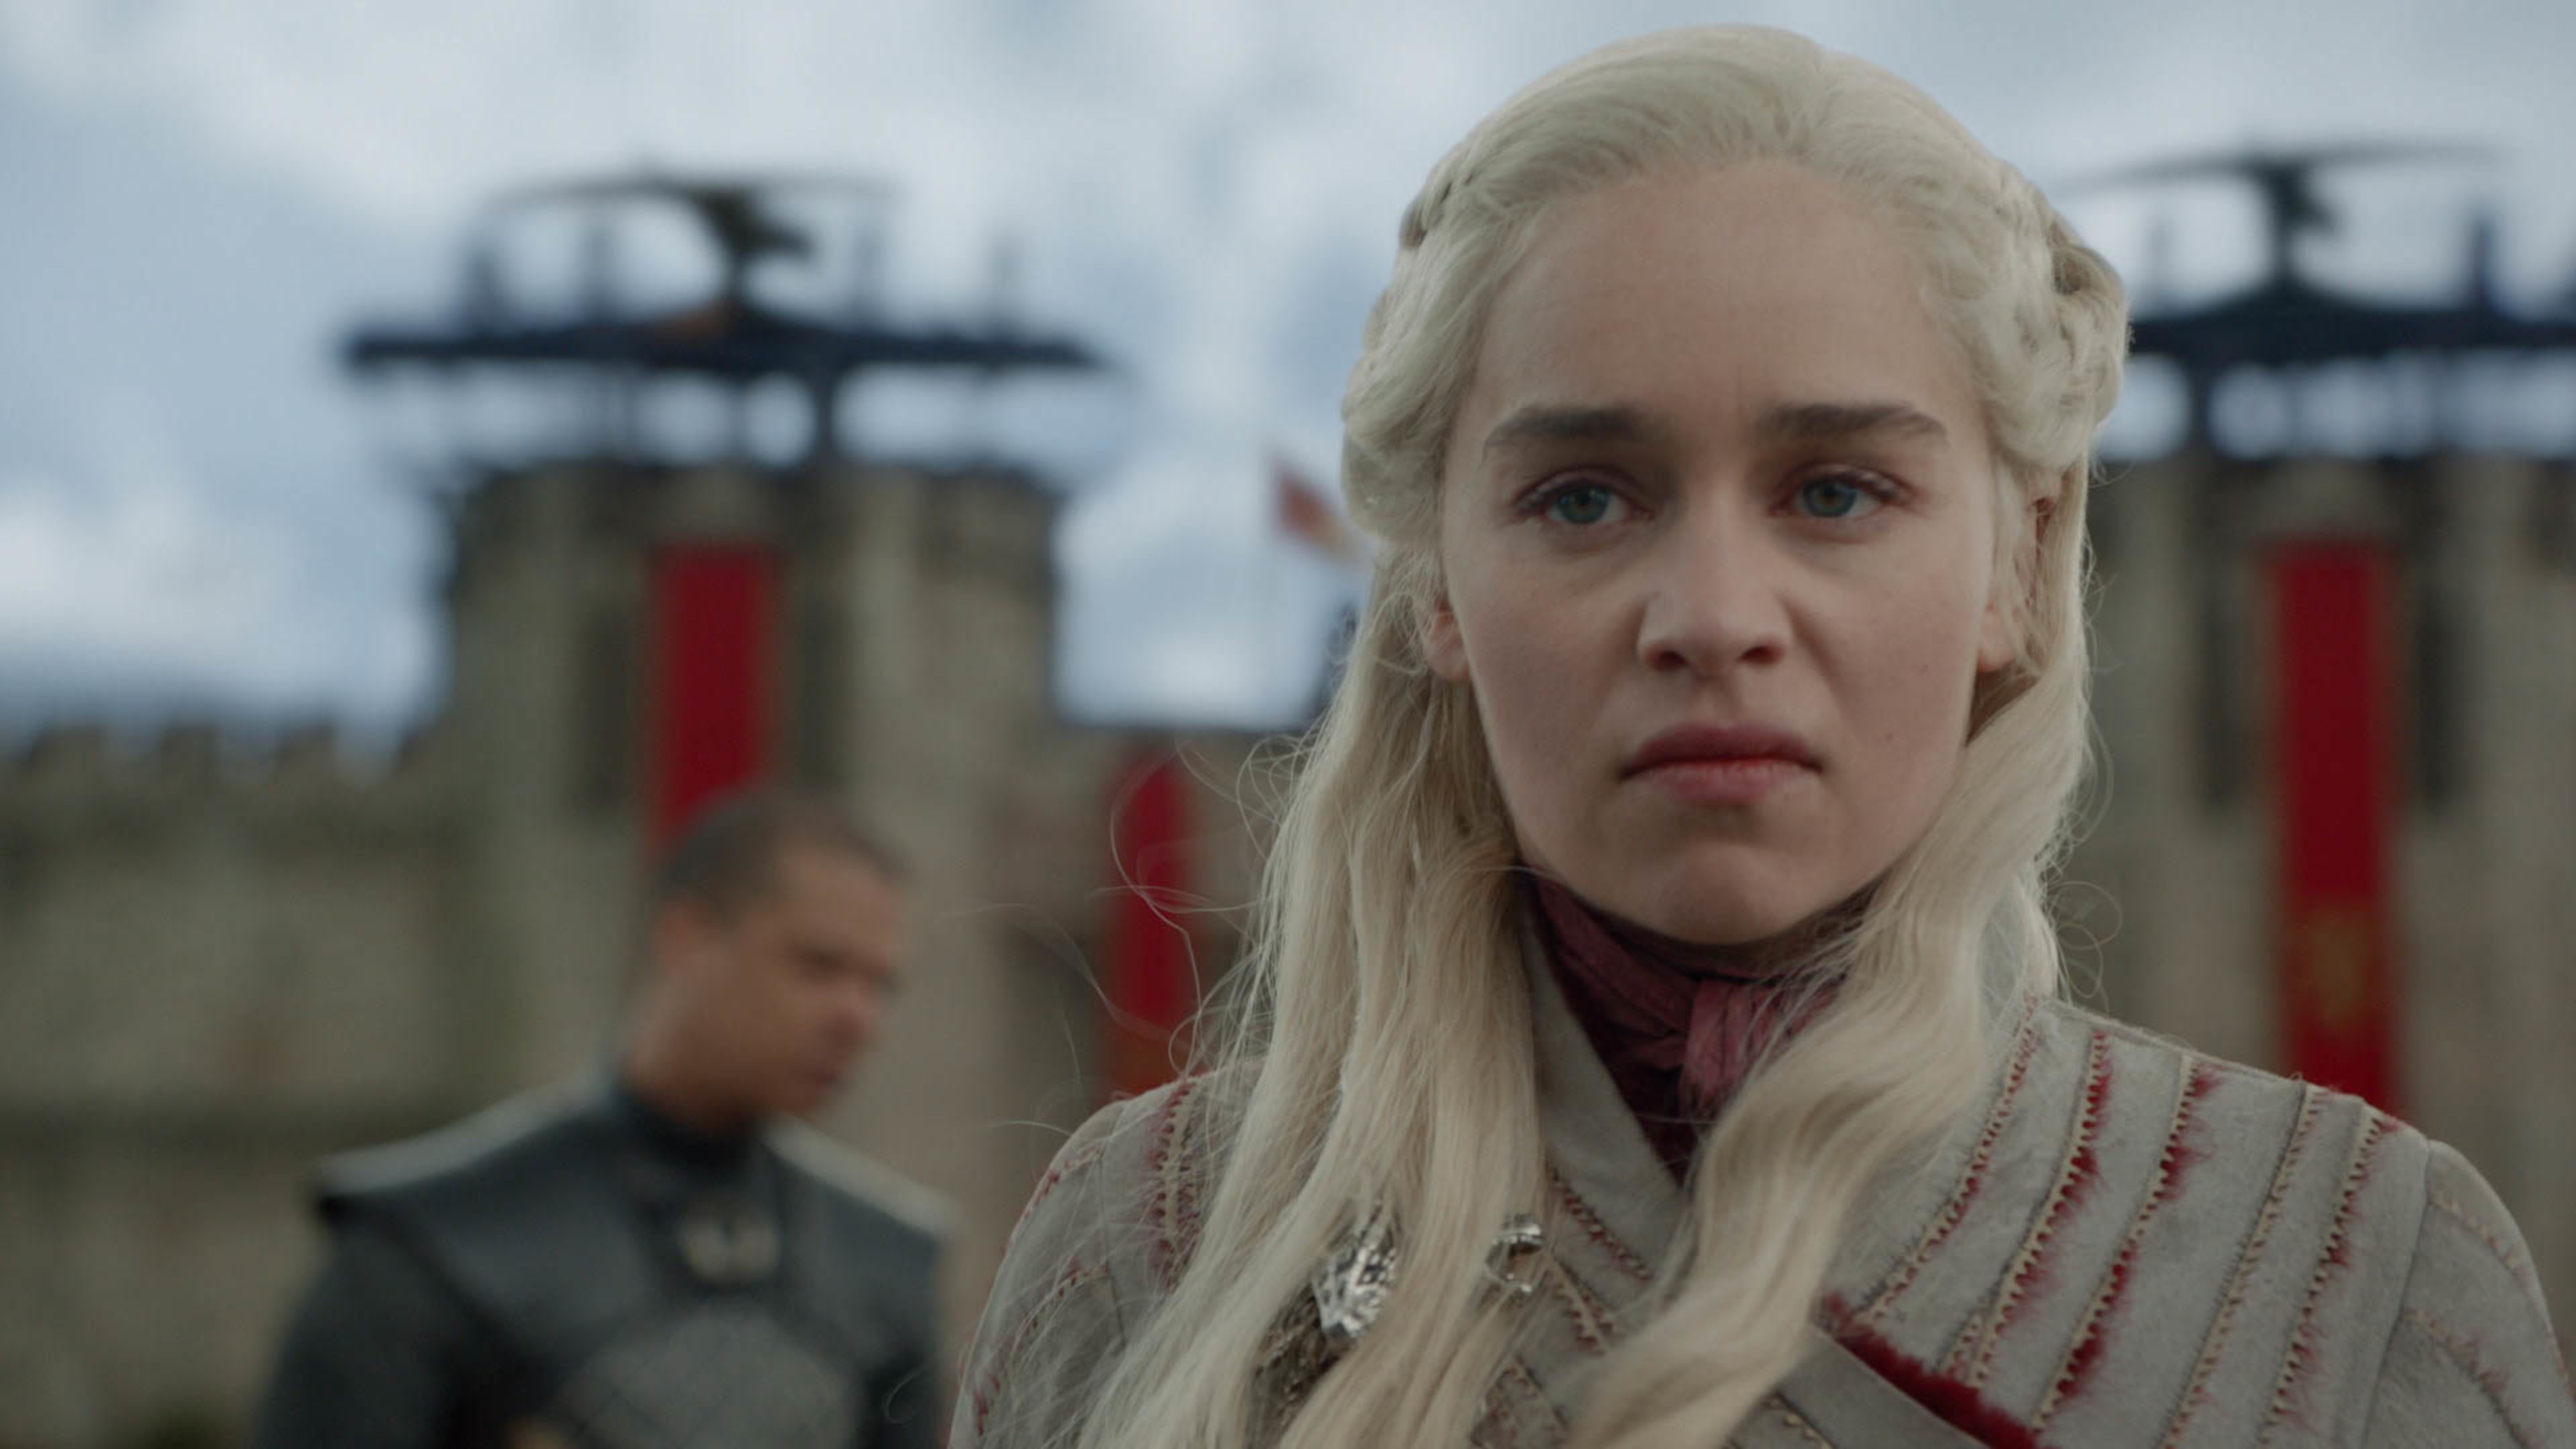 Daenerys reacts to the death of a key character in Game of Thrones season 8 episode four